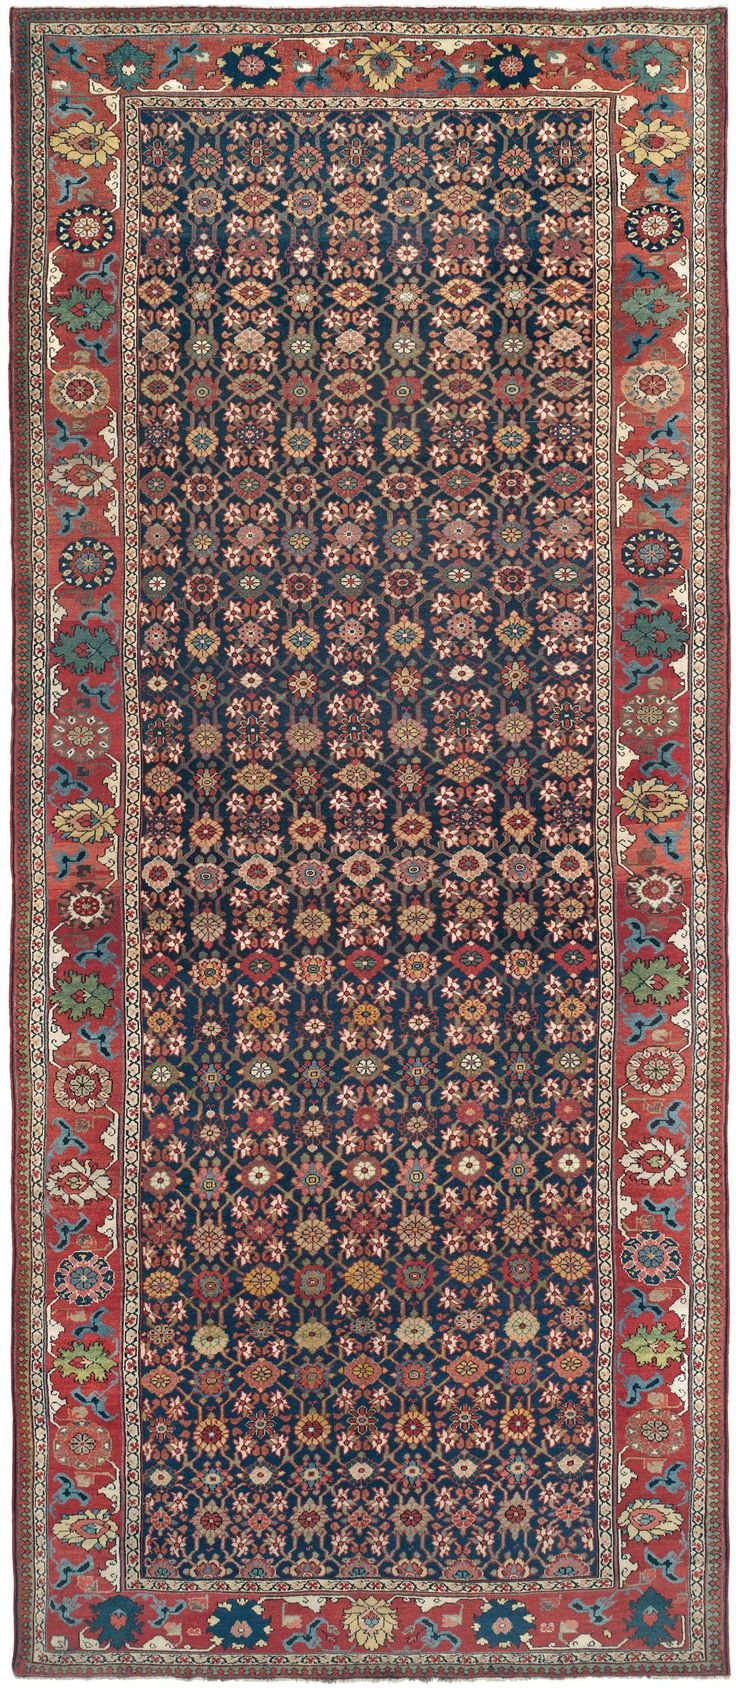 Article On The History And Artistic Design On Century Bijar (Bidjar)  Antique Oriental Rugs. Antique Bijar Rugs And Carpets From Claremont Rug  Company.